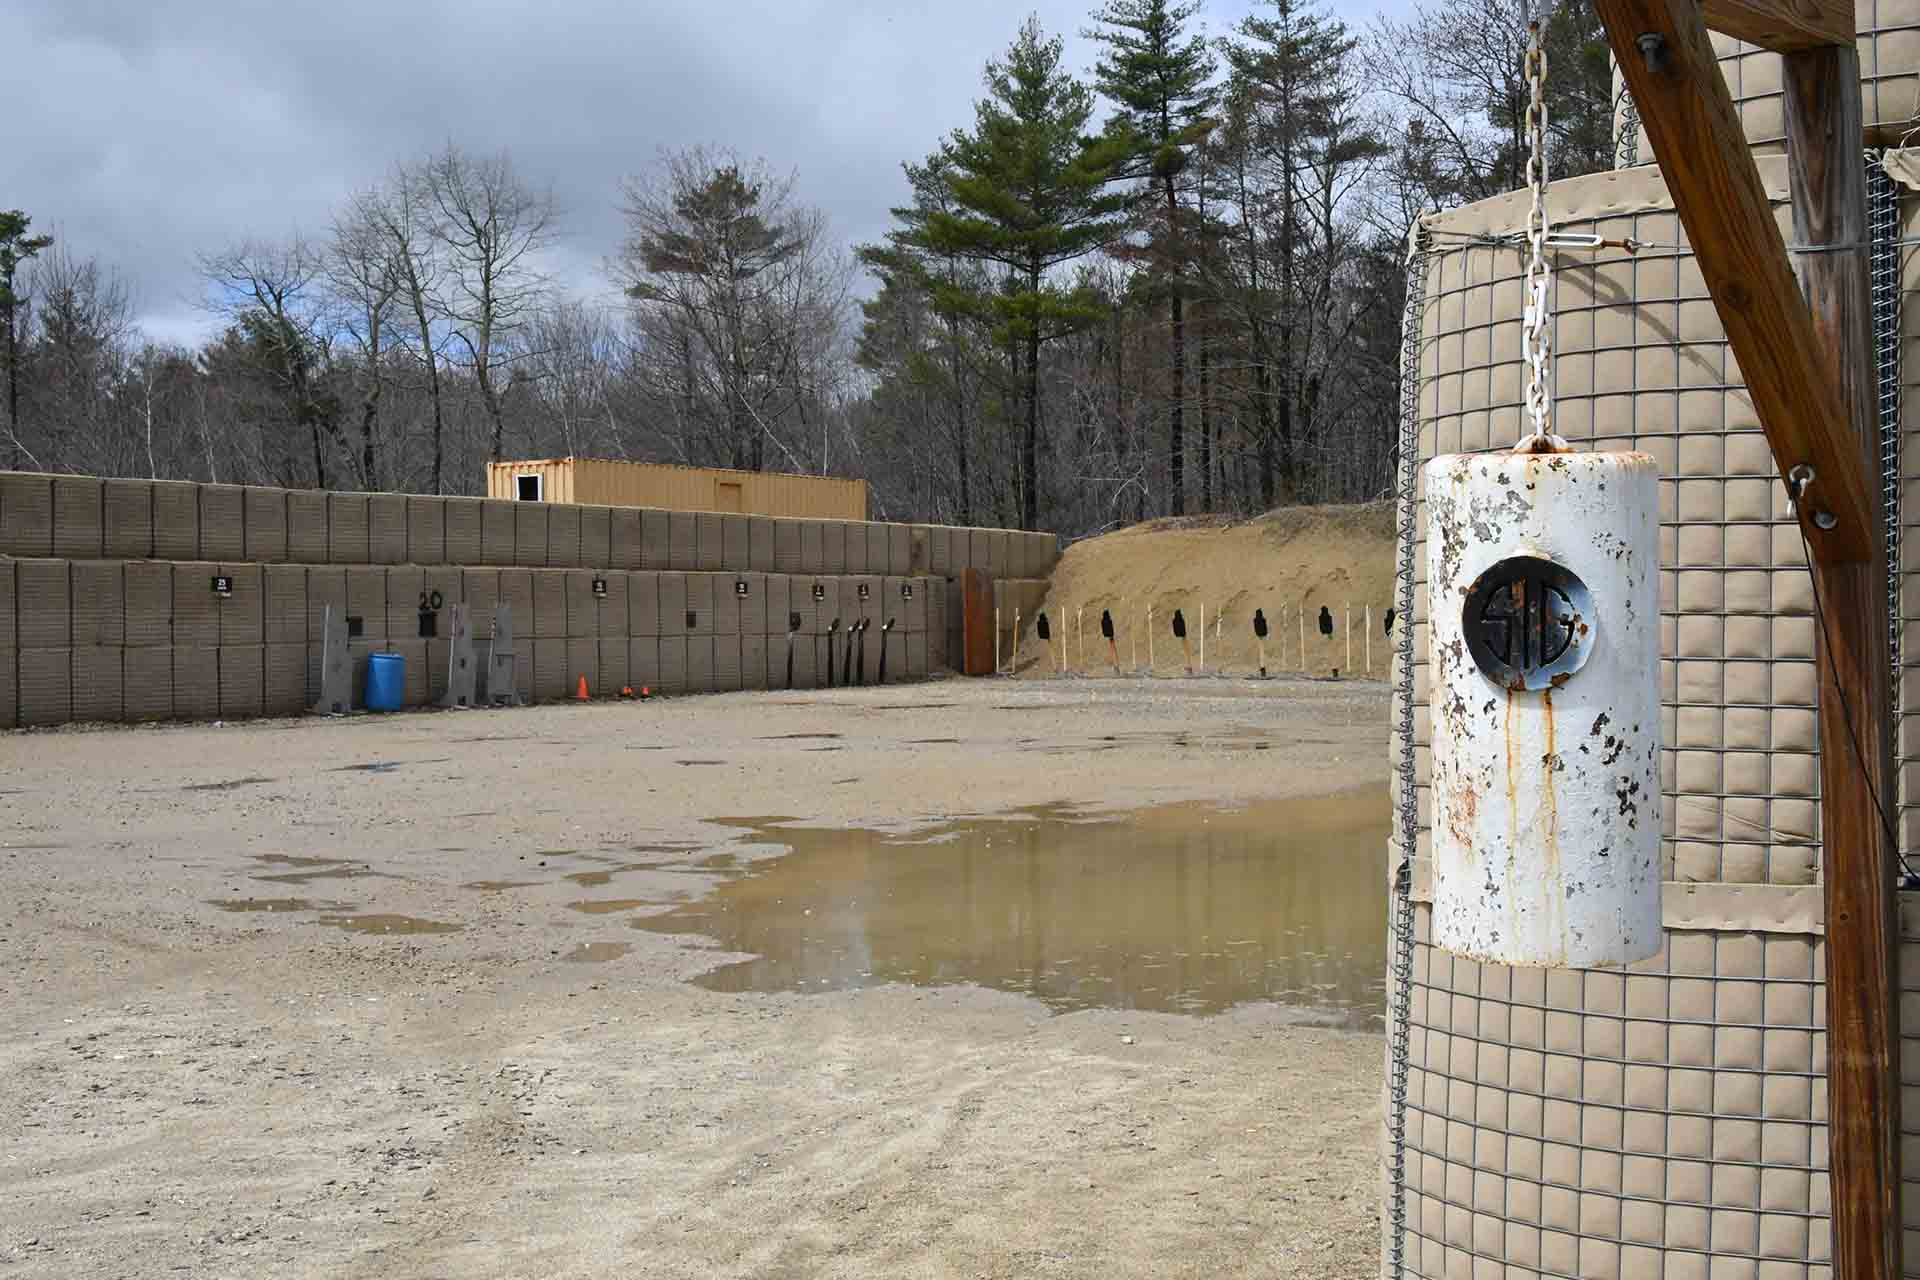 SIG Sauer Academy: shooting ranges